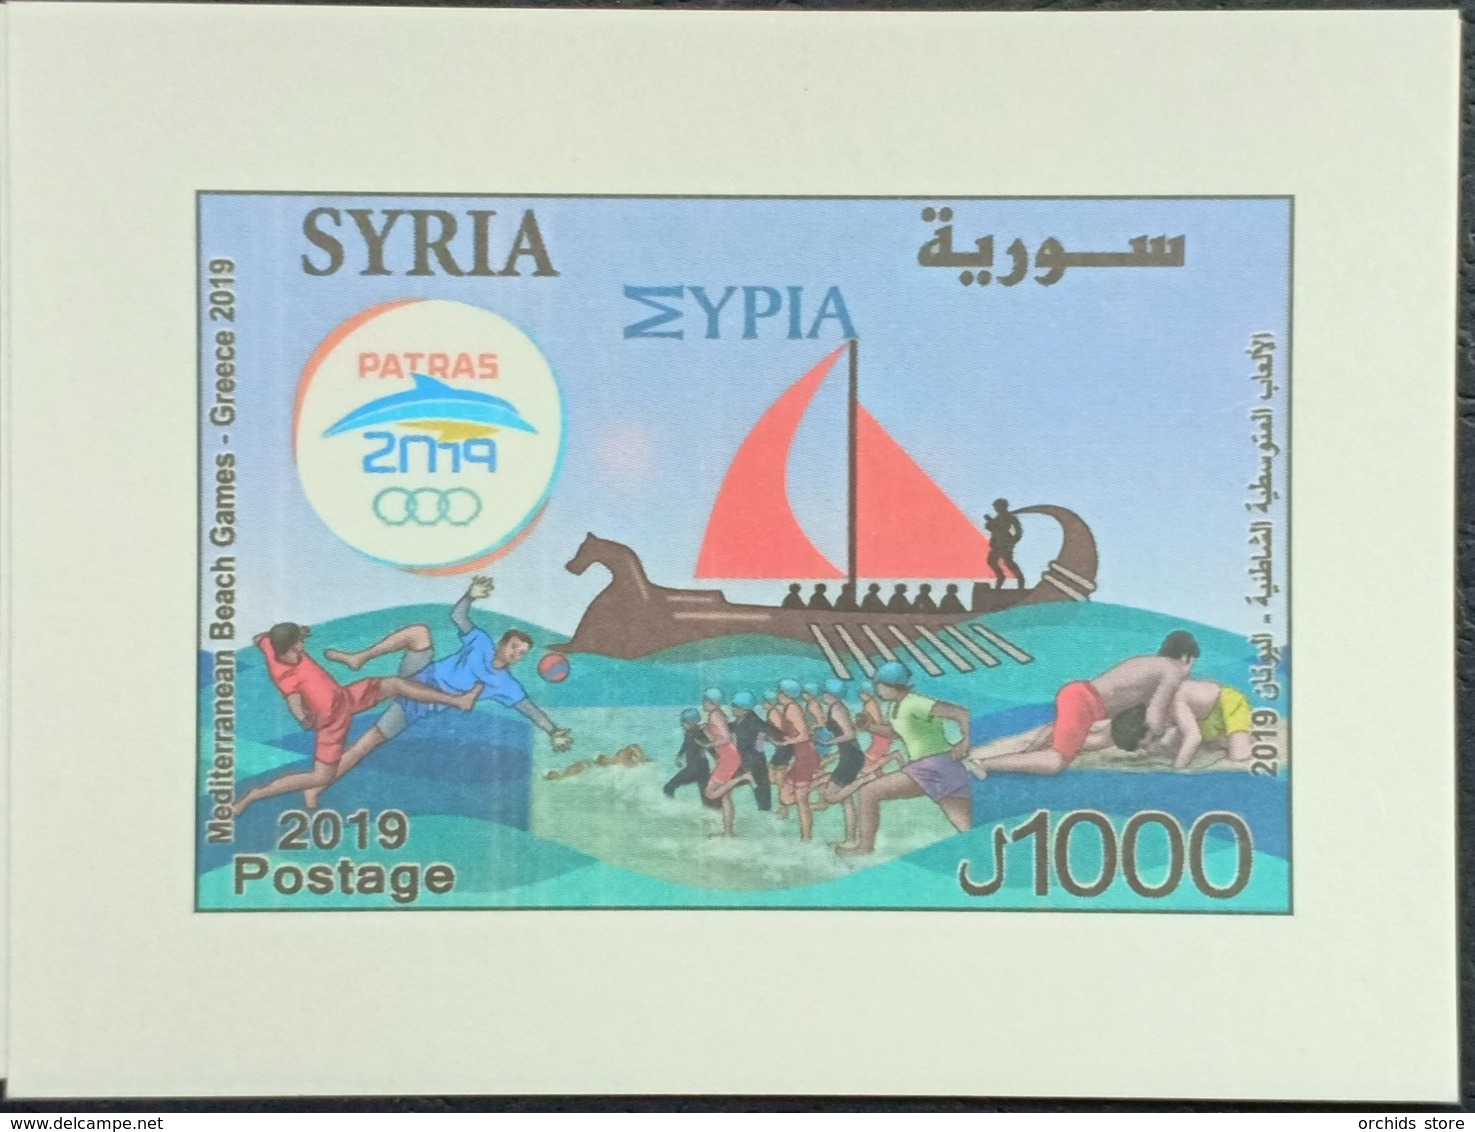 Syria 2019 NEW MNH Block S/S - Mediterranean Beach Games, Greece - Football Beach, Swimming - Only 1000 Issued - Syria